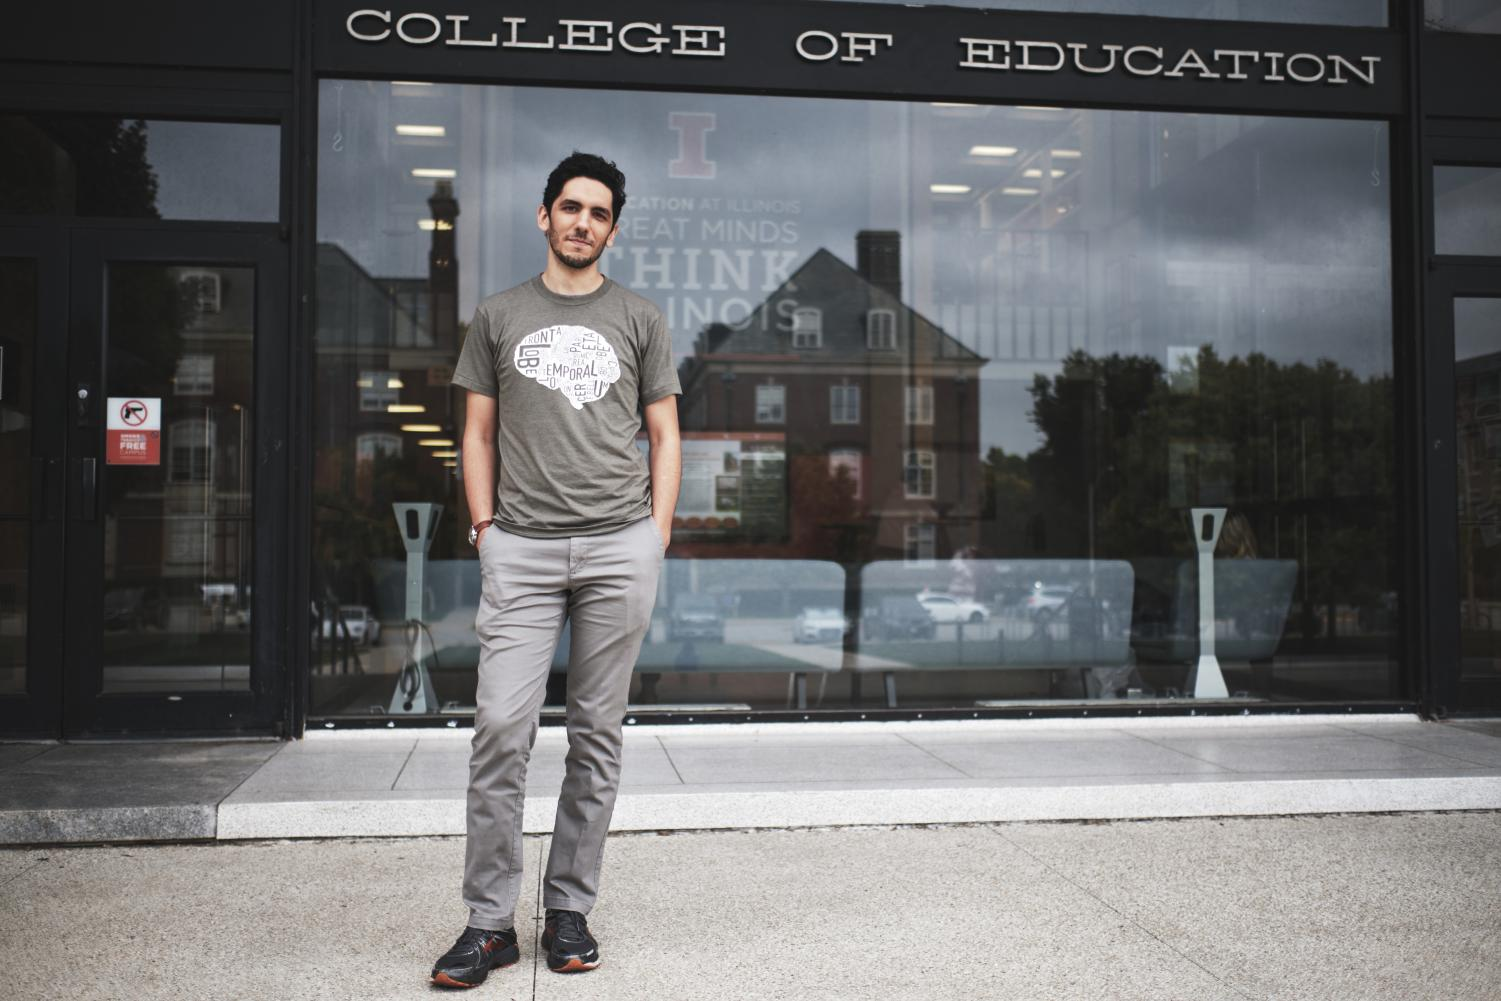 Amir Maghsoodi, a second-year doctoral candidate in the counseling psychology program whose office is located in the College of Education, stands in front of the College of Education Building. The program for doctoral students was recently ranked among the top of the nation.